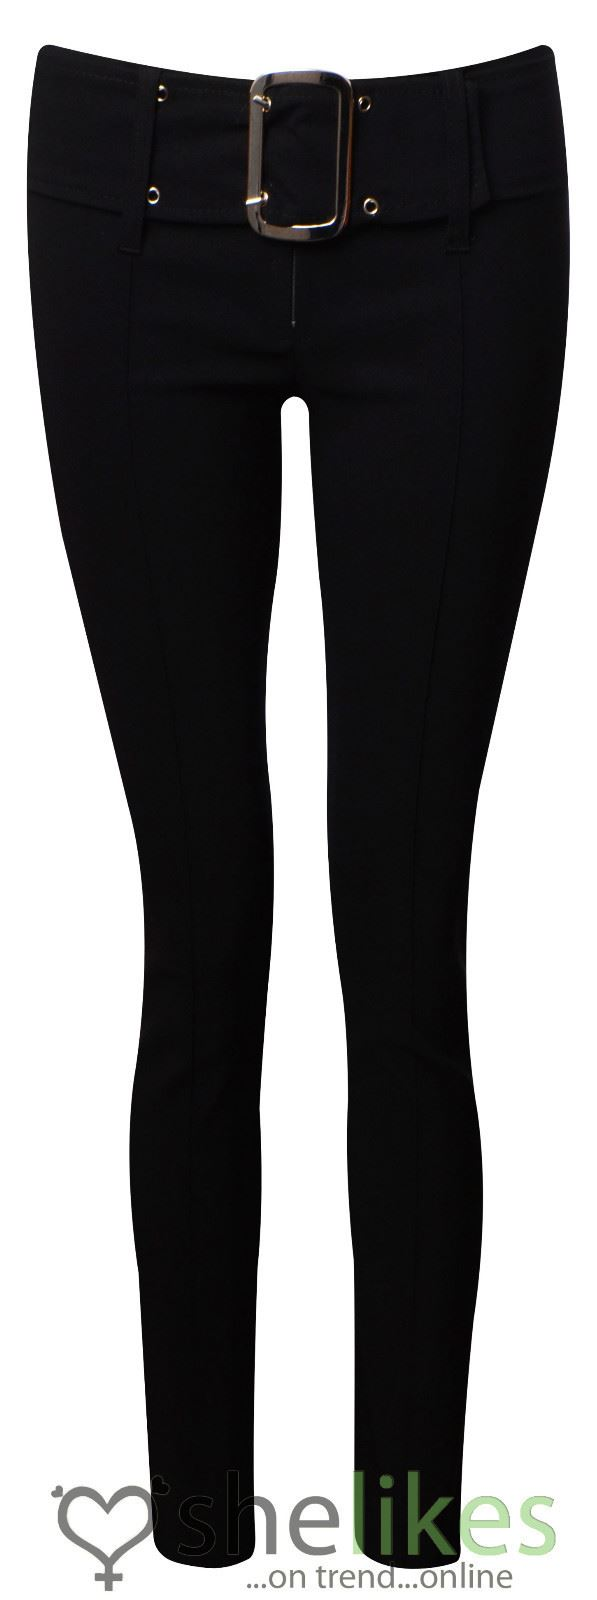 A wardrobe staple, women's black trousers add effortless style. Stylish trousers for your casual and work wear. Next day delivery and free returns available.